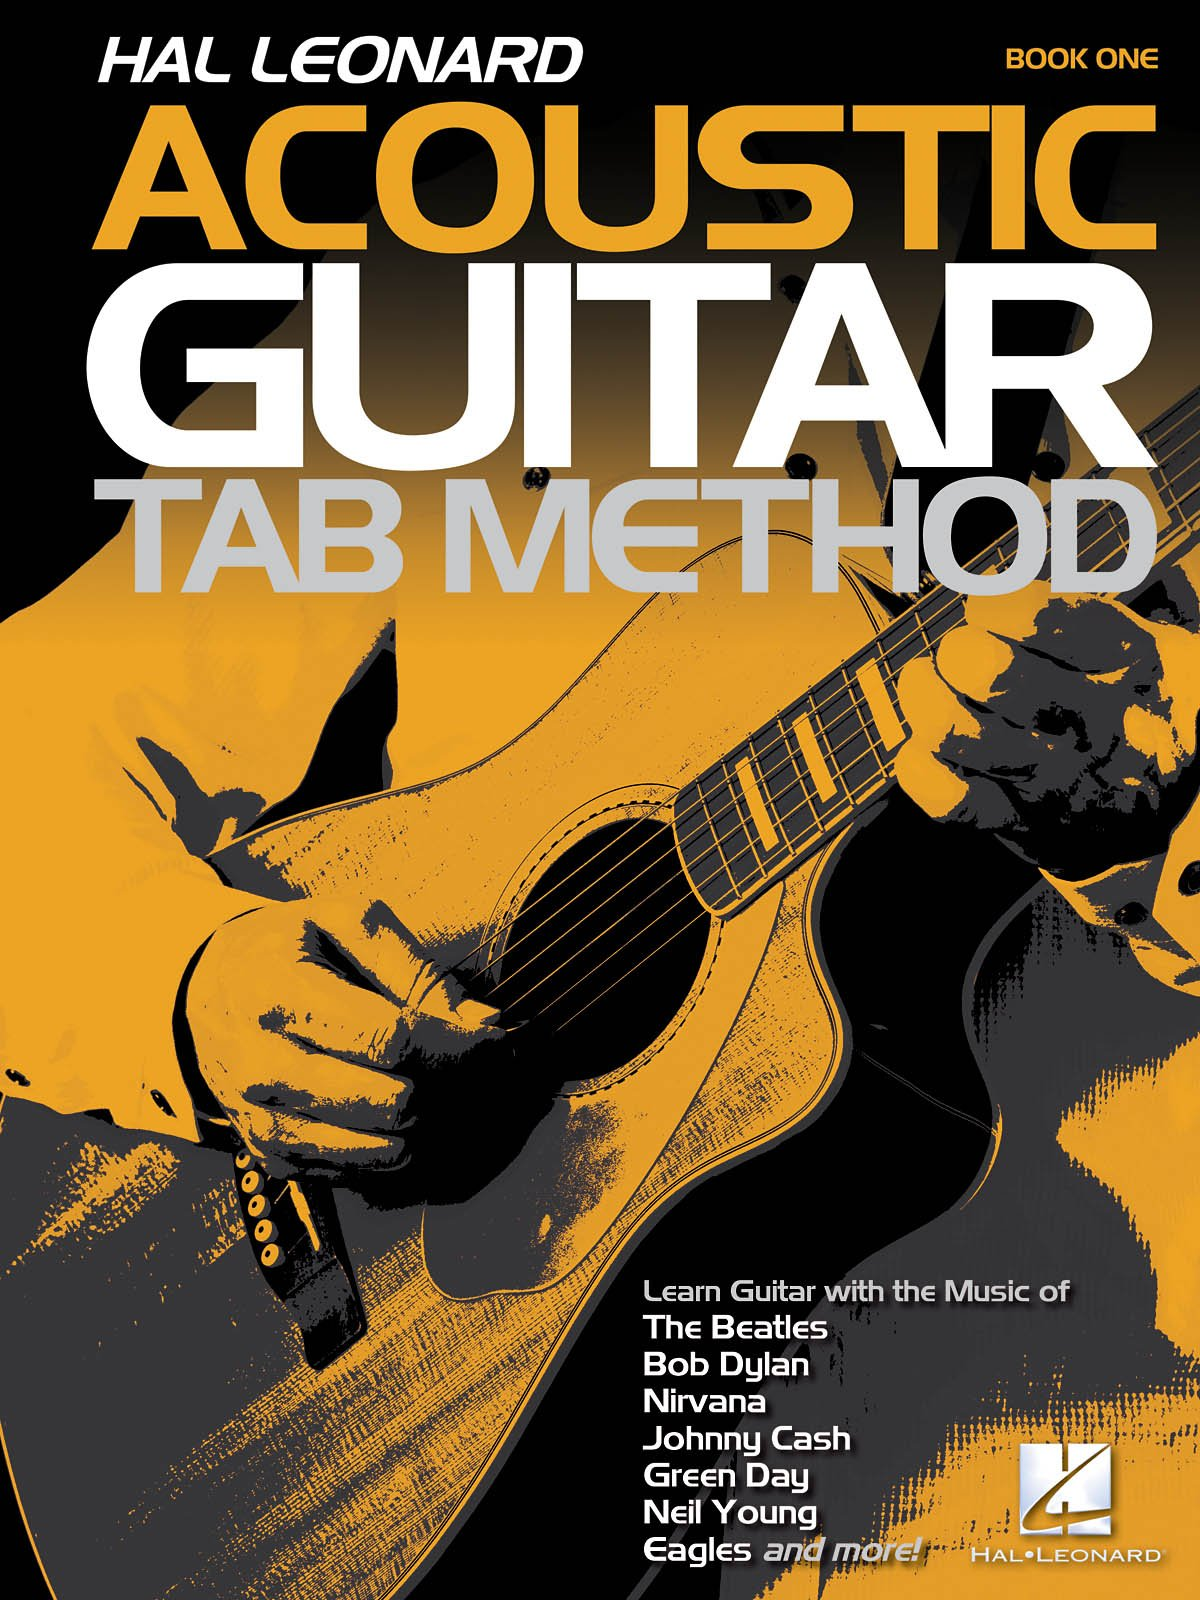 Hal Leonard Acoustic Guitar Tab Method, Book 1